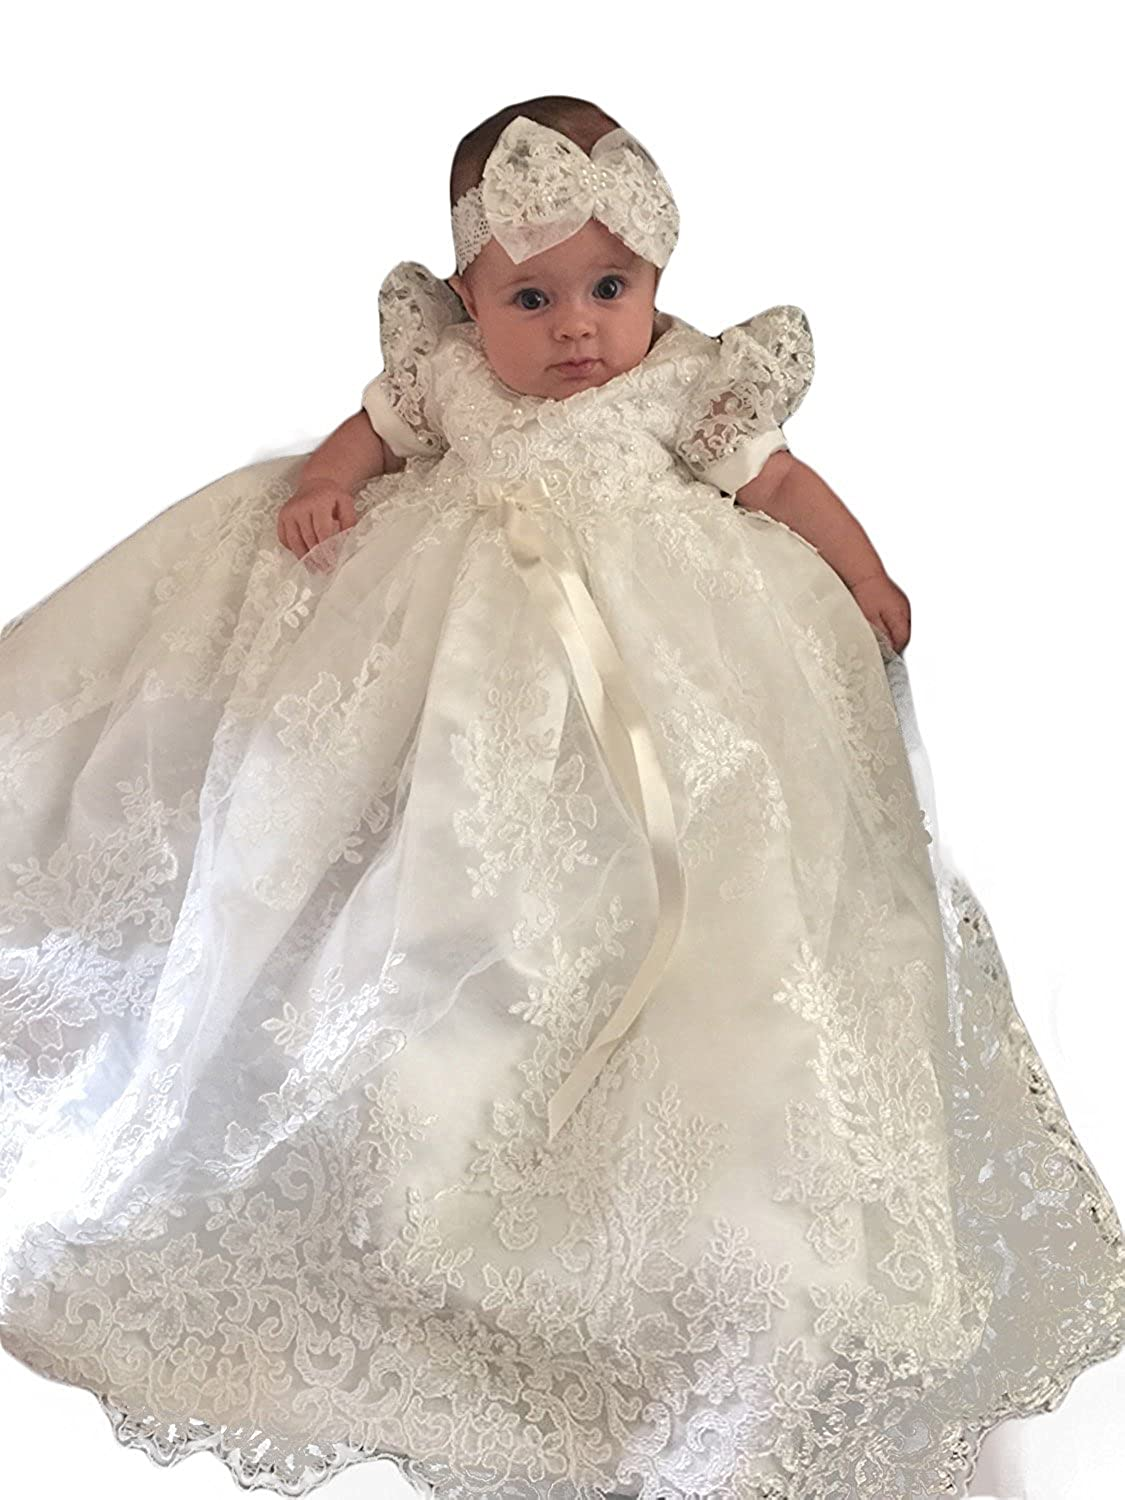 Banfvting Baby-girls Lace Beads Infant Toddler White Christening Gowns Long